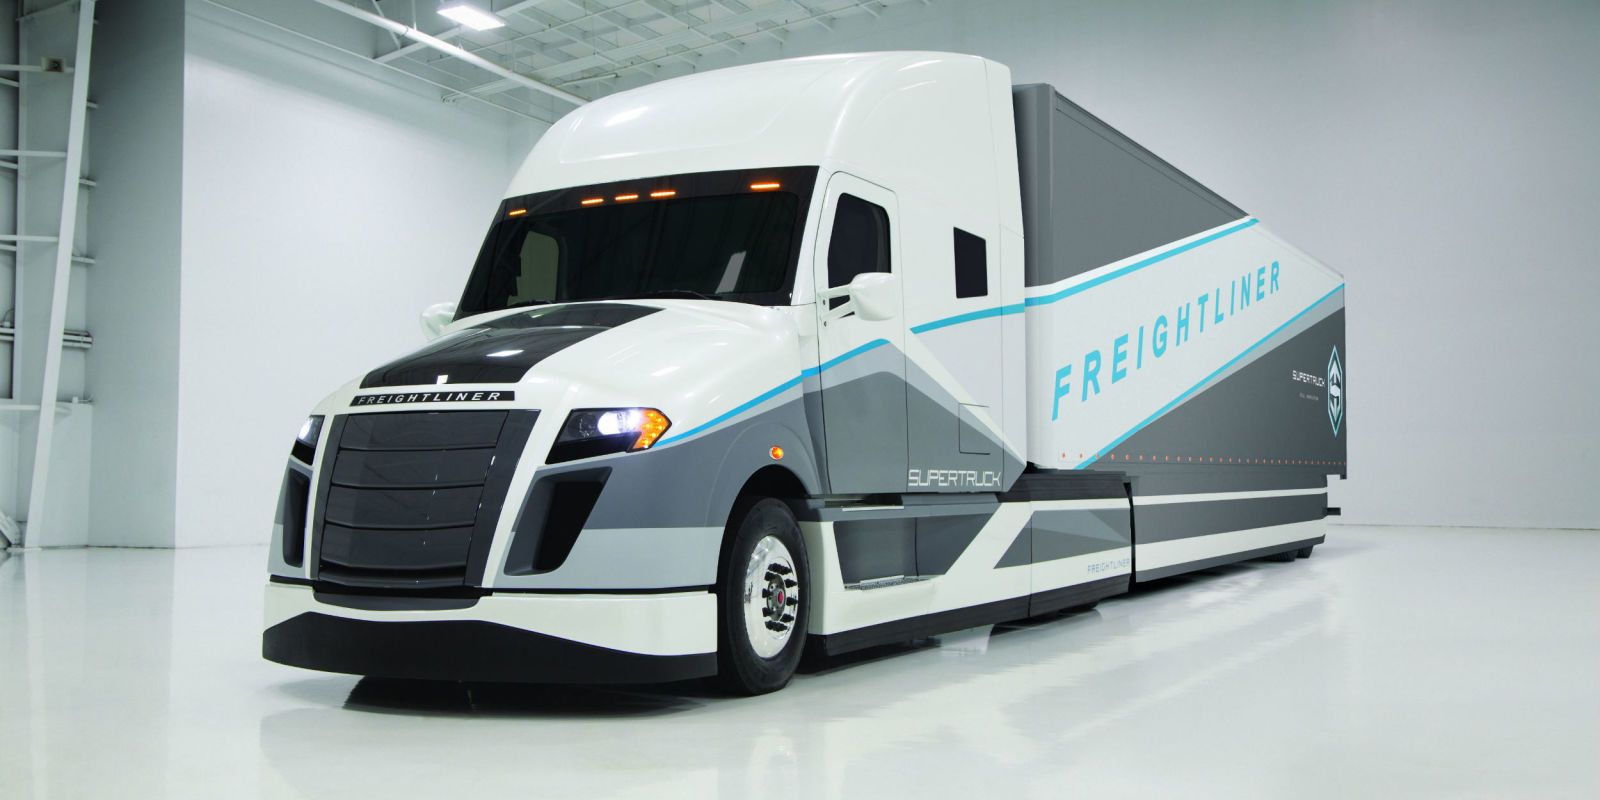 Hybrid Big Rig Doubles The Mileage Of Todays Trucks Truck Semi Fuel Filter Freightliner Supertruck Improves Economy By 115 Percent And Cools Cargo Compartment With Solar Power